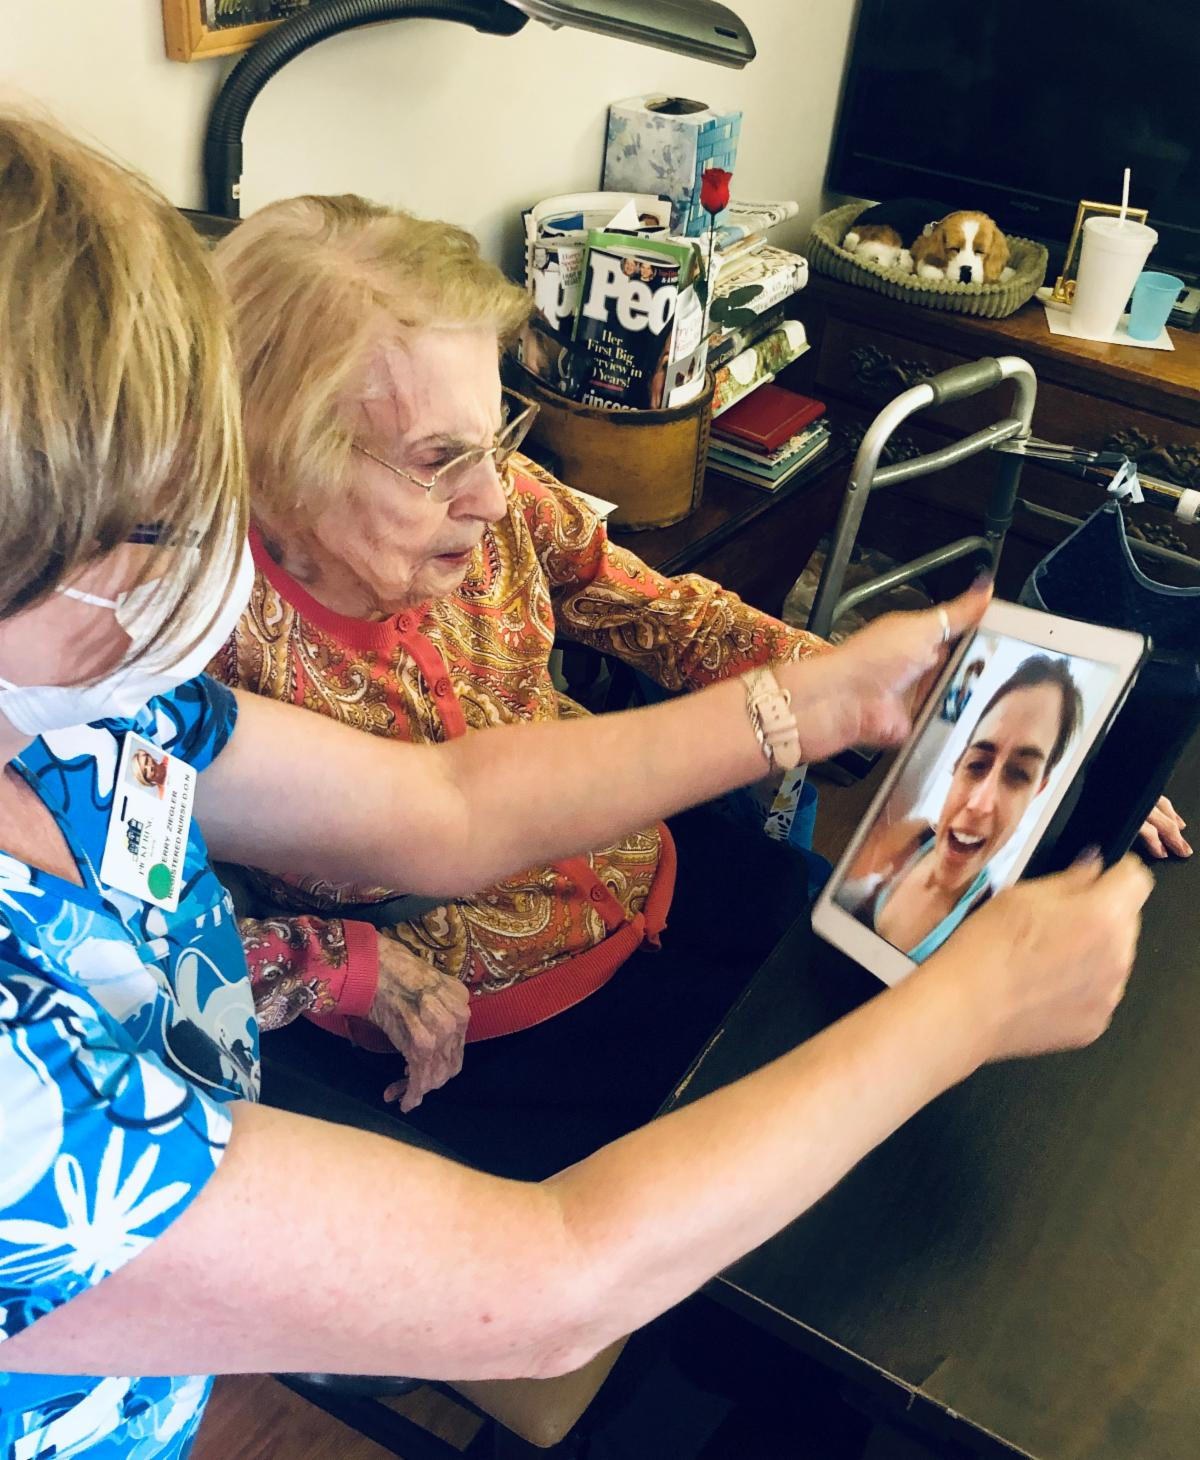 Director of Nursing Terry Ziegler helping resident Irene Bittner connected with her family through Pickering's iPad